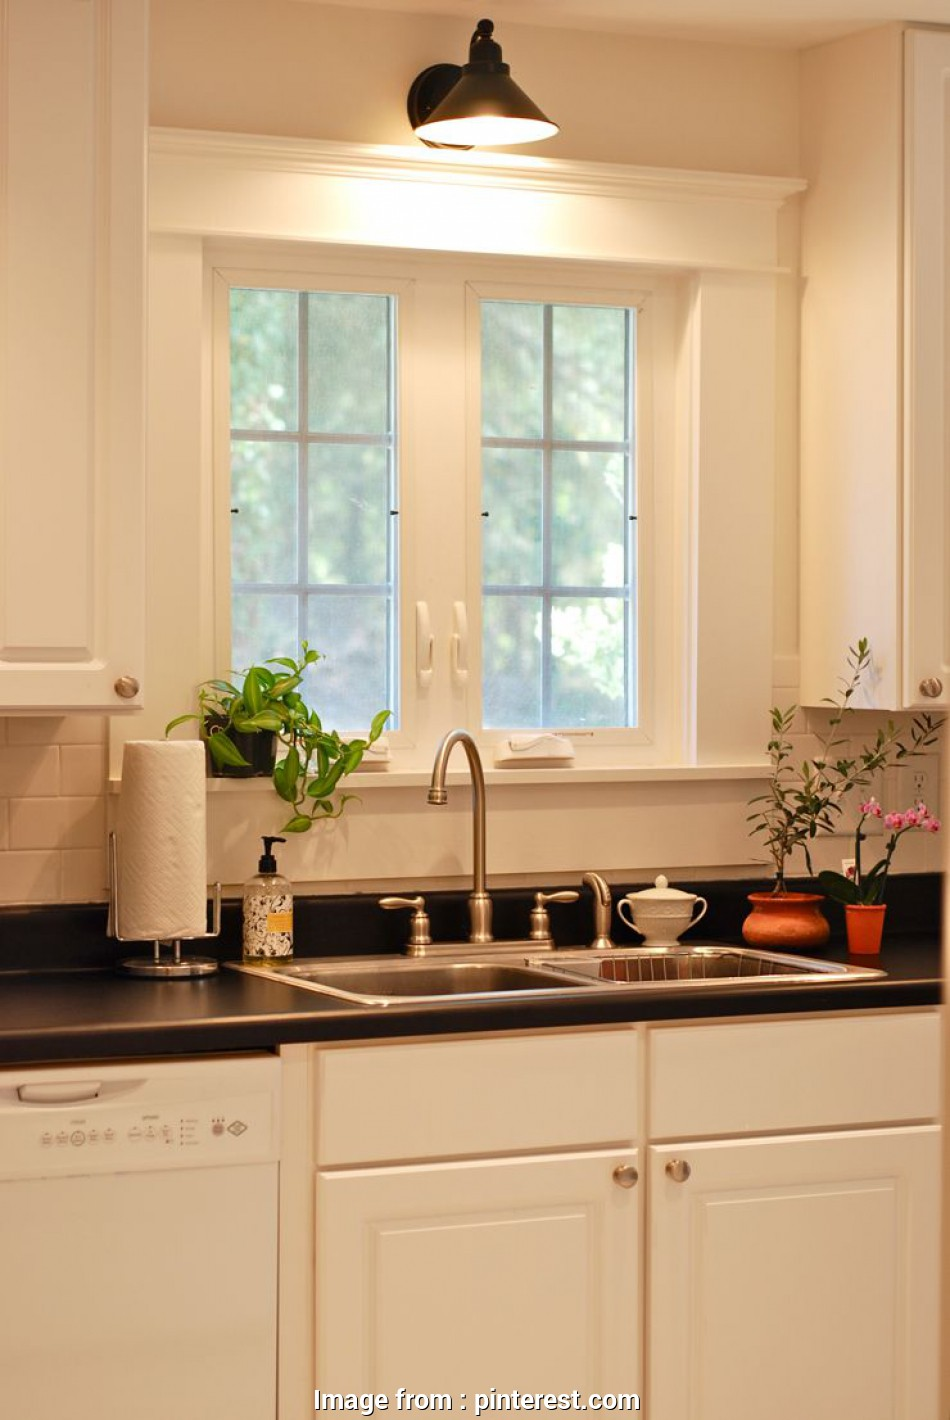 How To Install Recessed Lighting Over Kitchen Sink ...